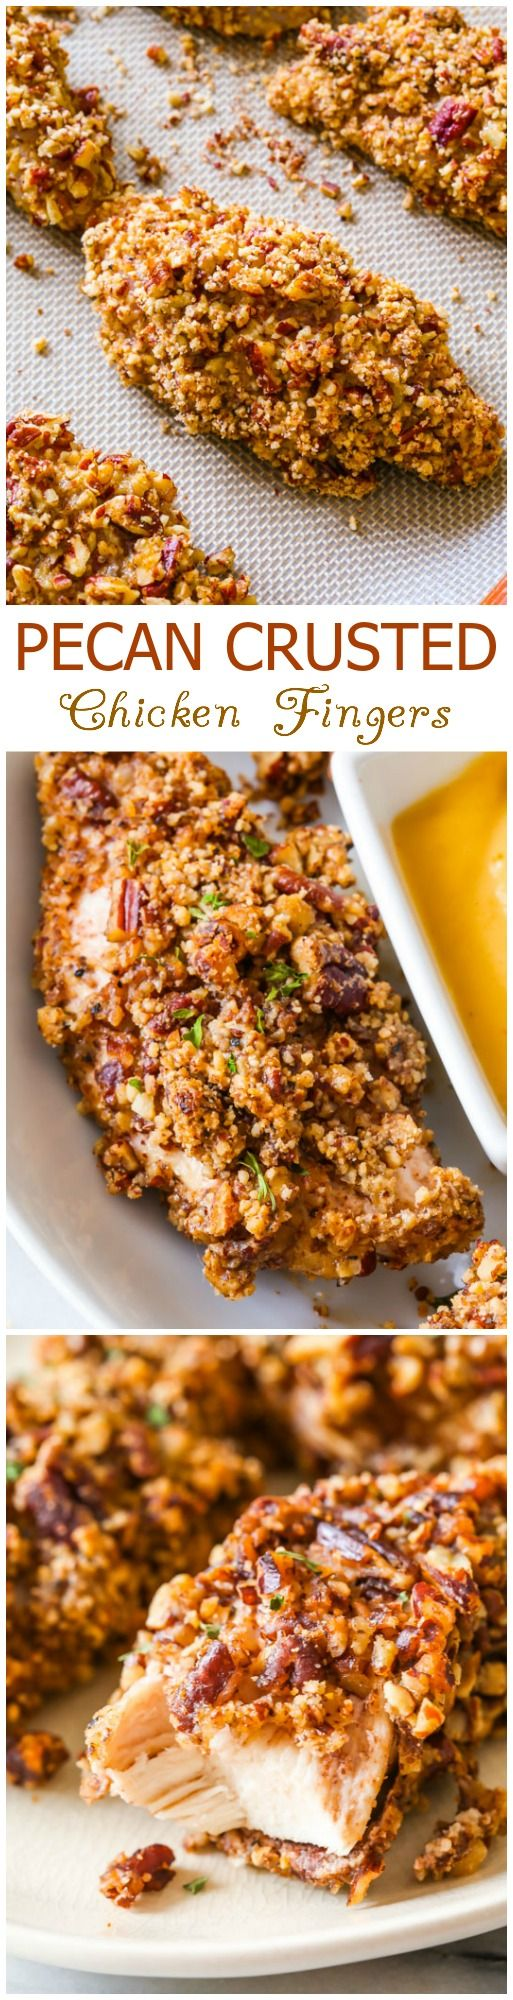 Pecan Crusted Chicken Fingers-- baked, not fried! Crunchy, nutty, toasty, delicious!